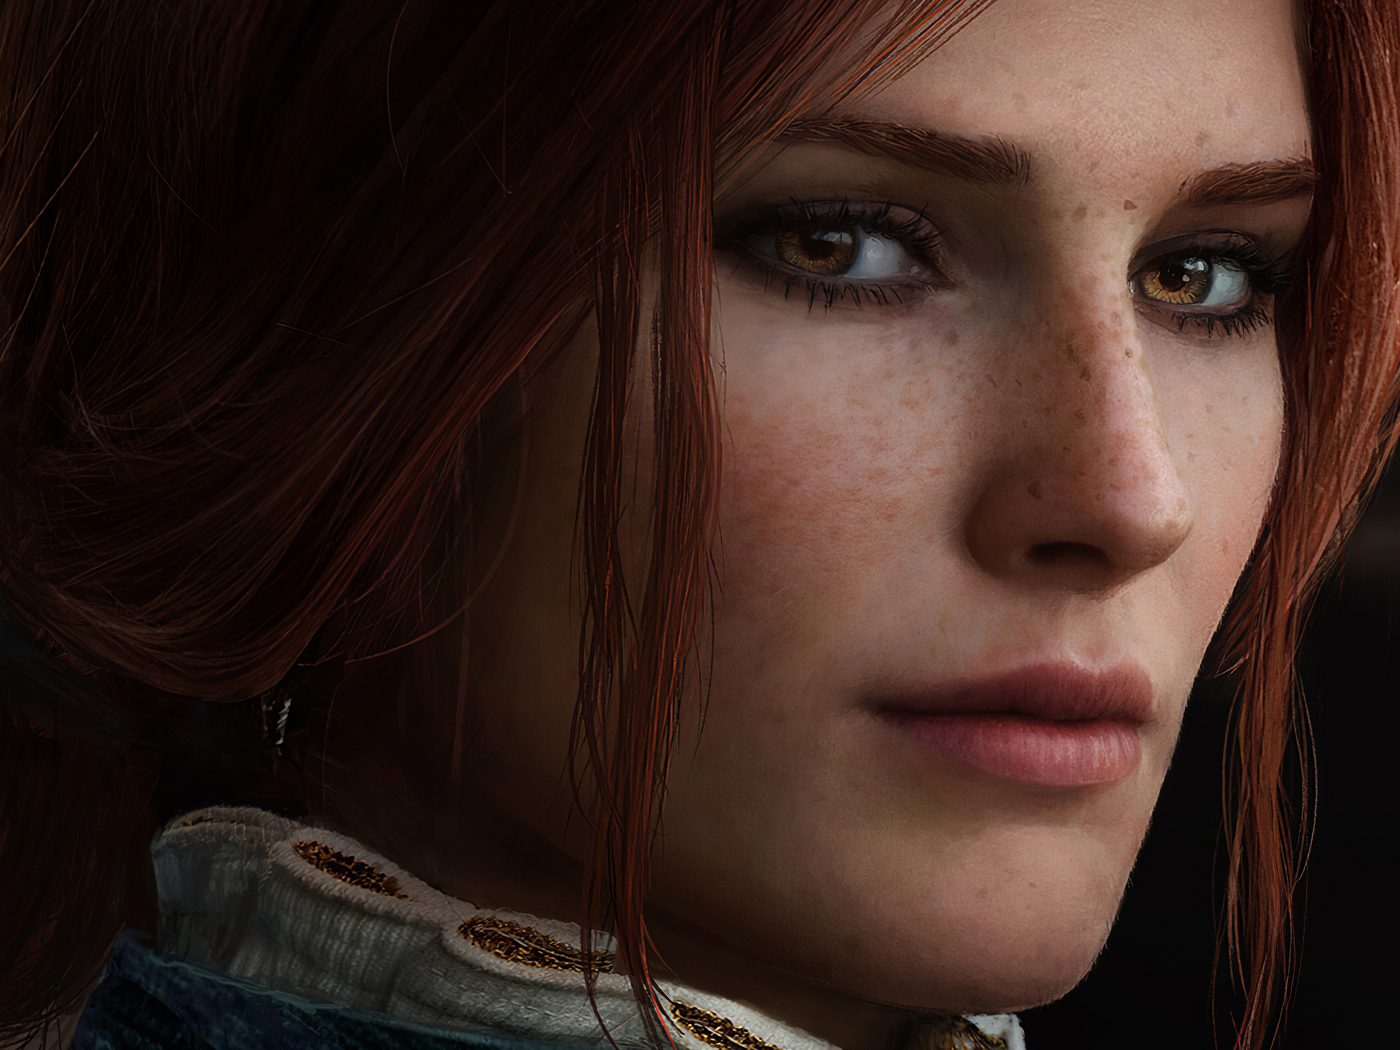 triss-merigold-witcher-3-cosplay-4k-fj.jpg